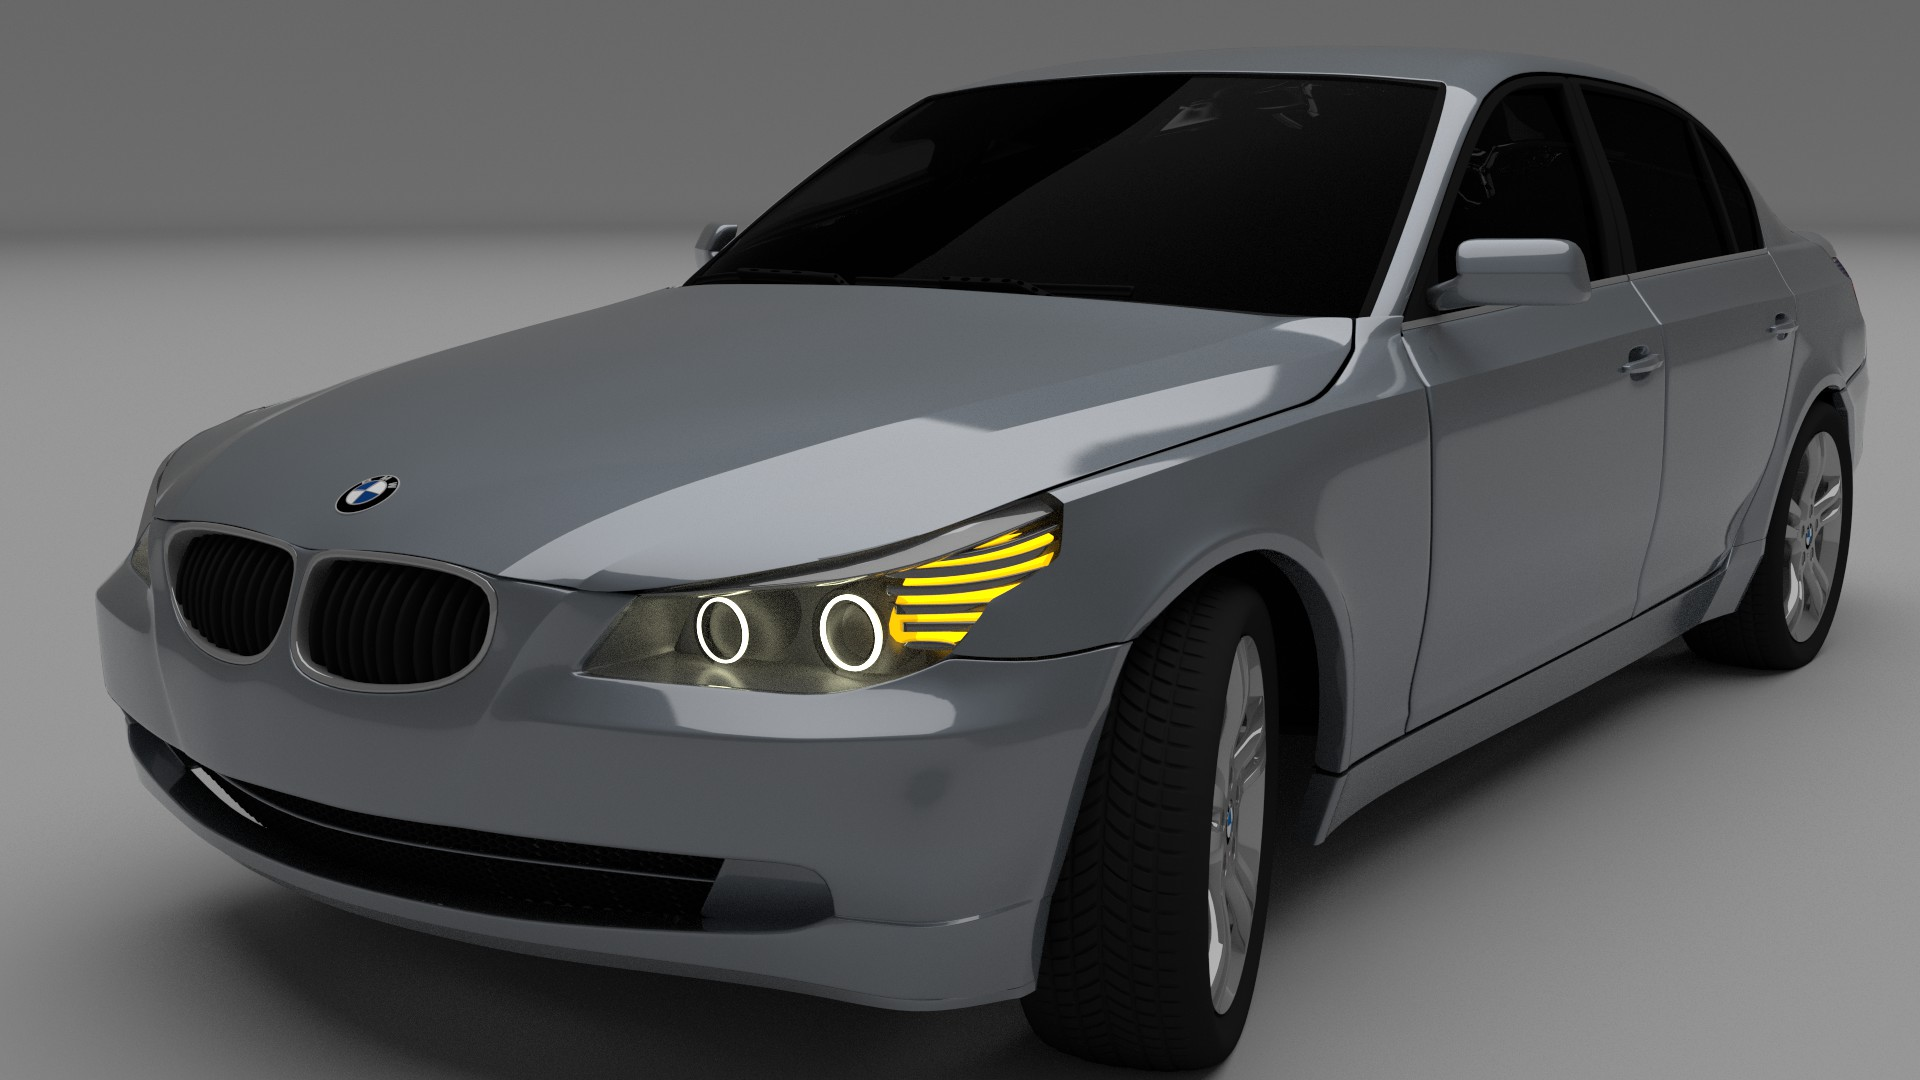 bmw e60 5 series 3d model blend dae mtl. Black Bedroom Furniture Sets. Home Design Ideas